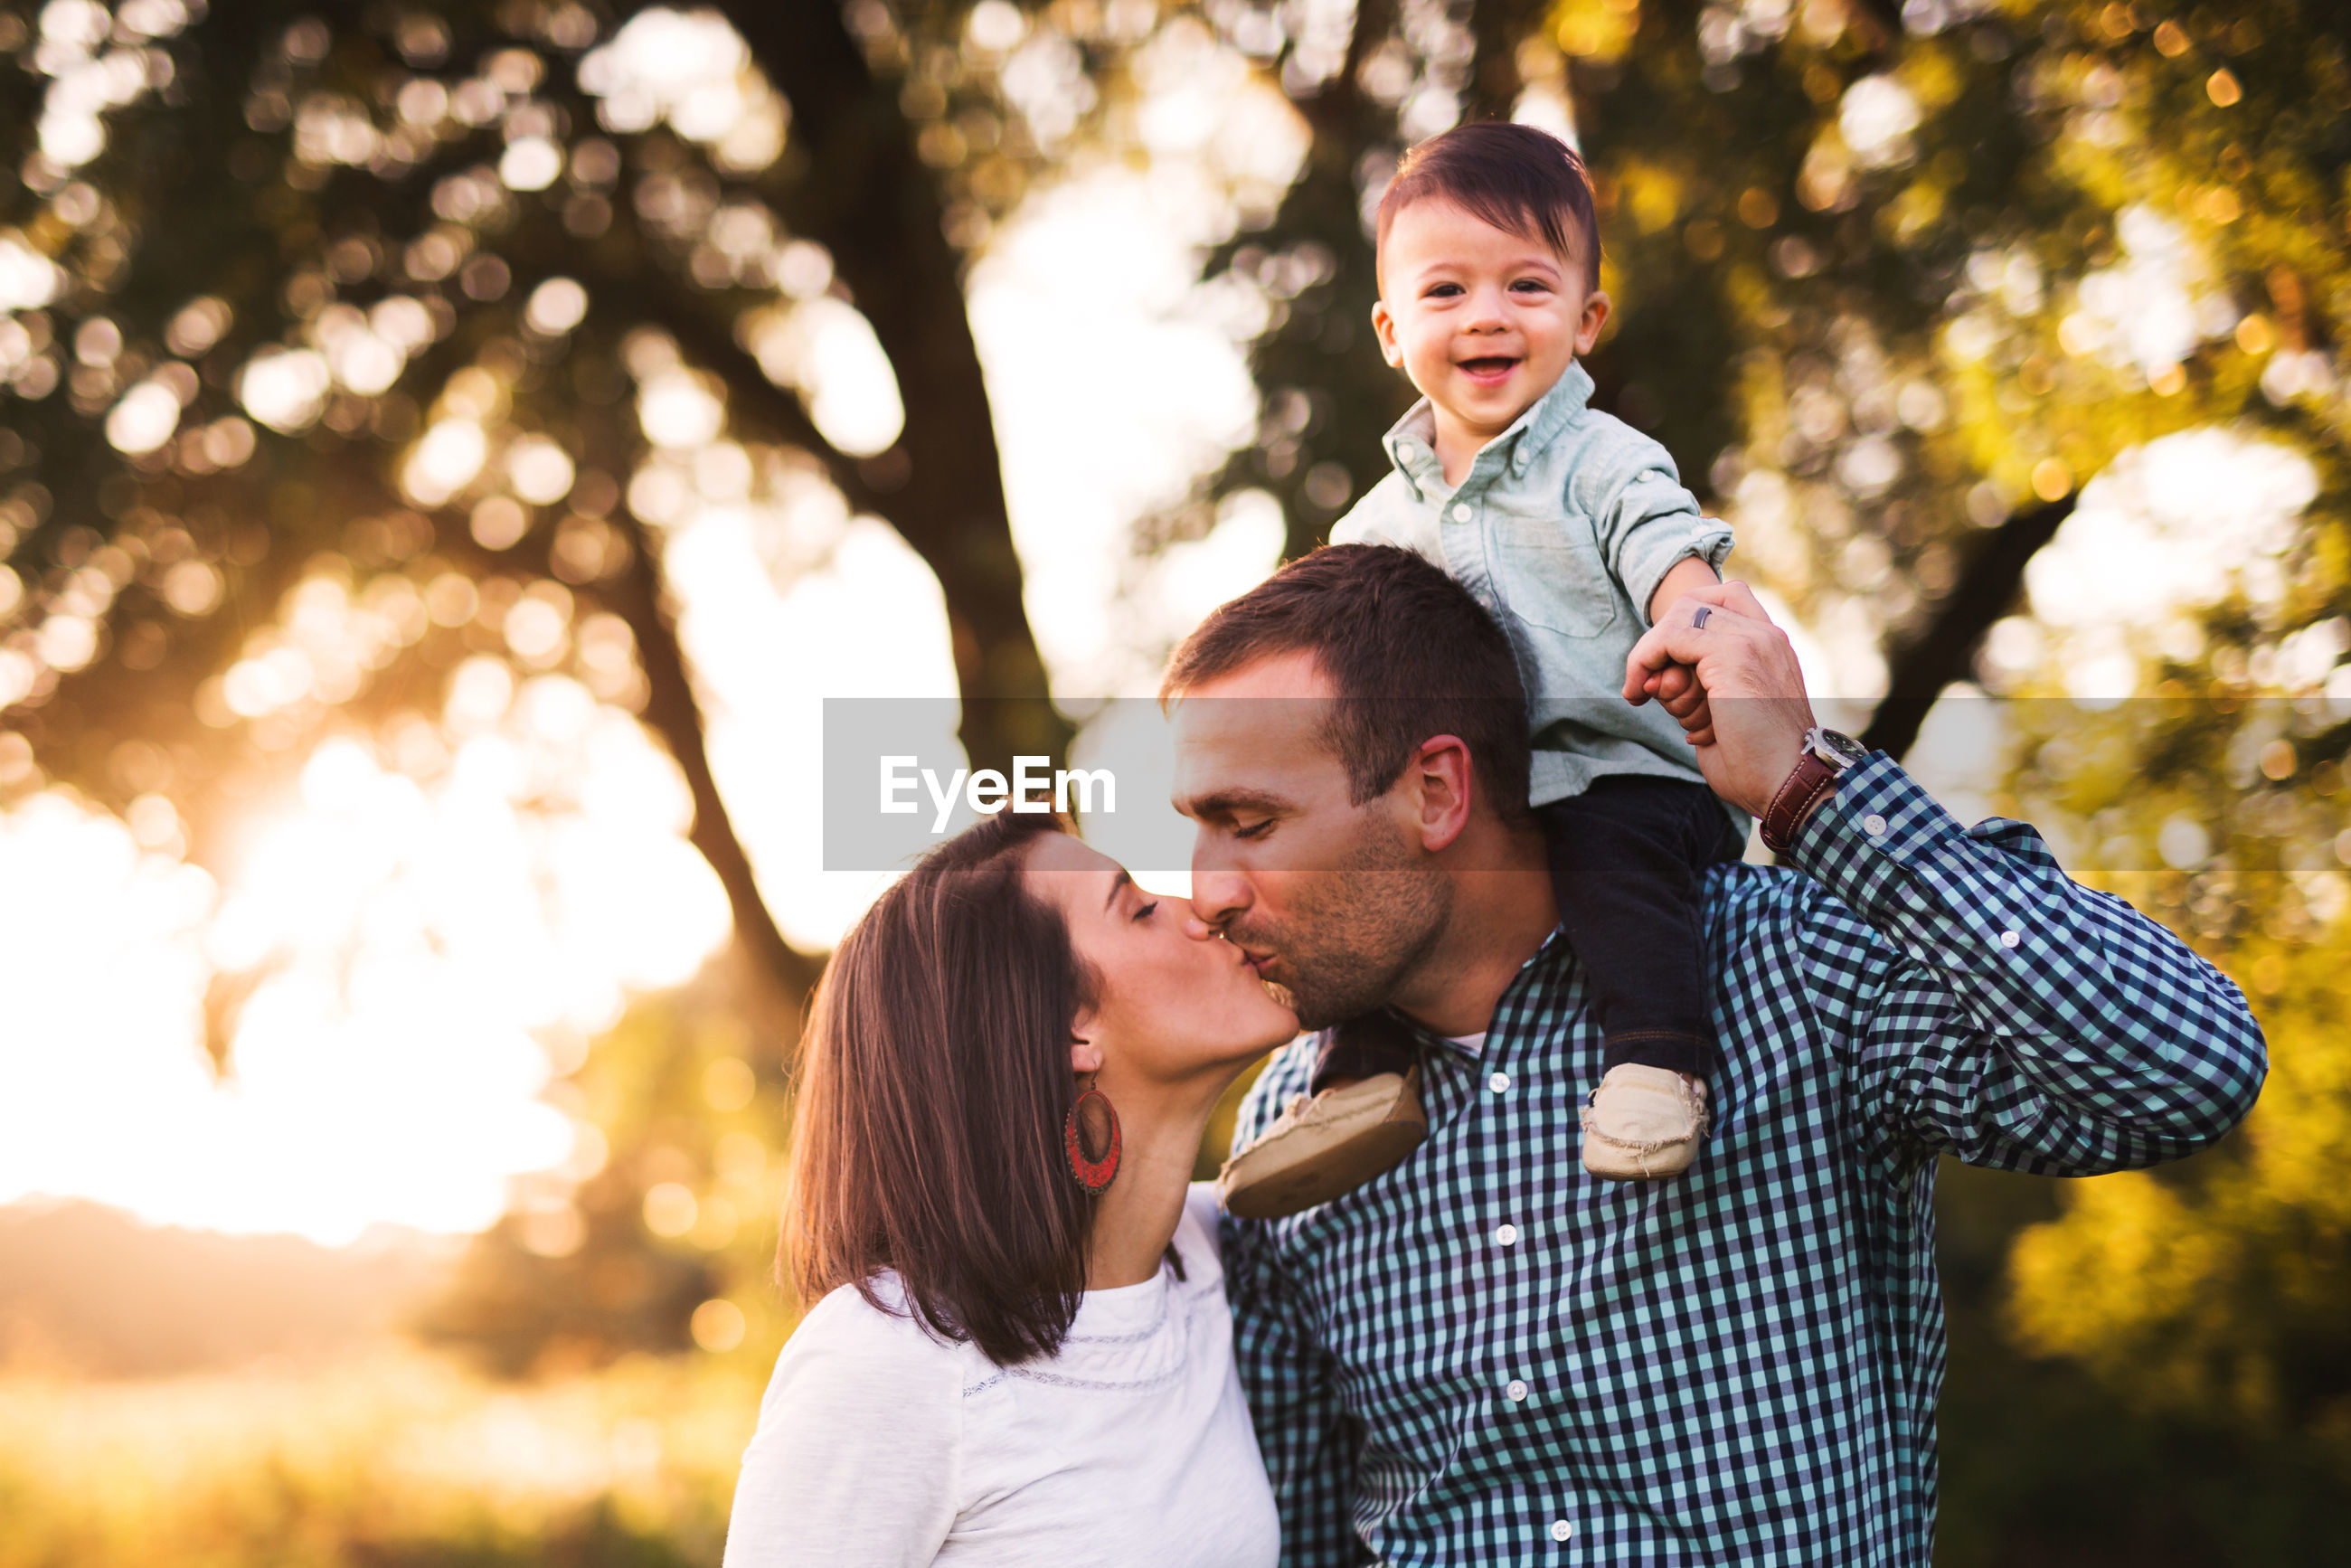 Portrait of cute smiling baby boy while parents kissing in park